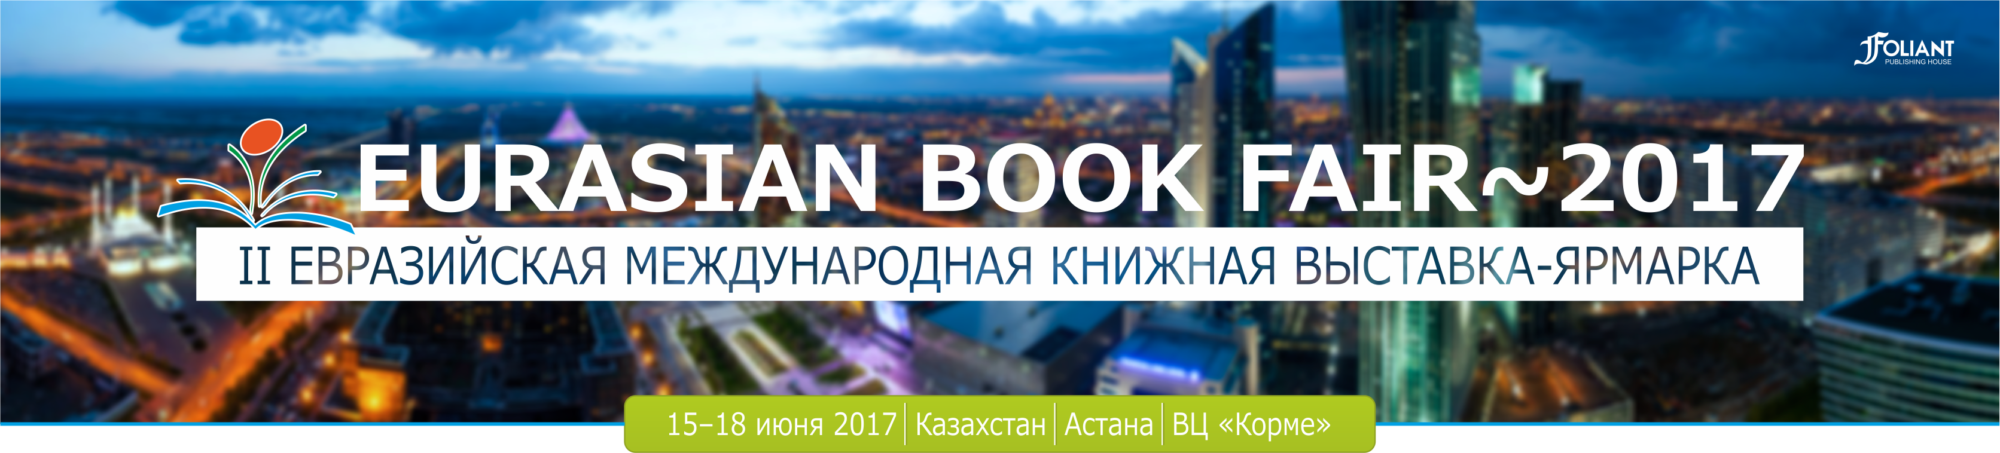 Eurasian Book Fair – 2017